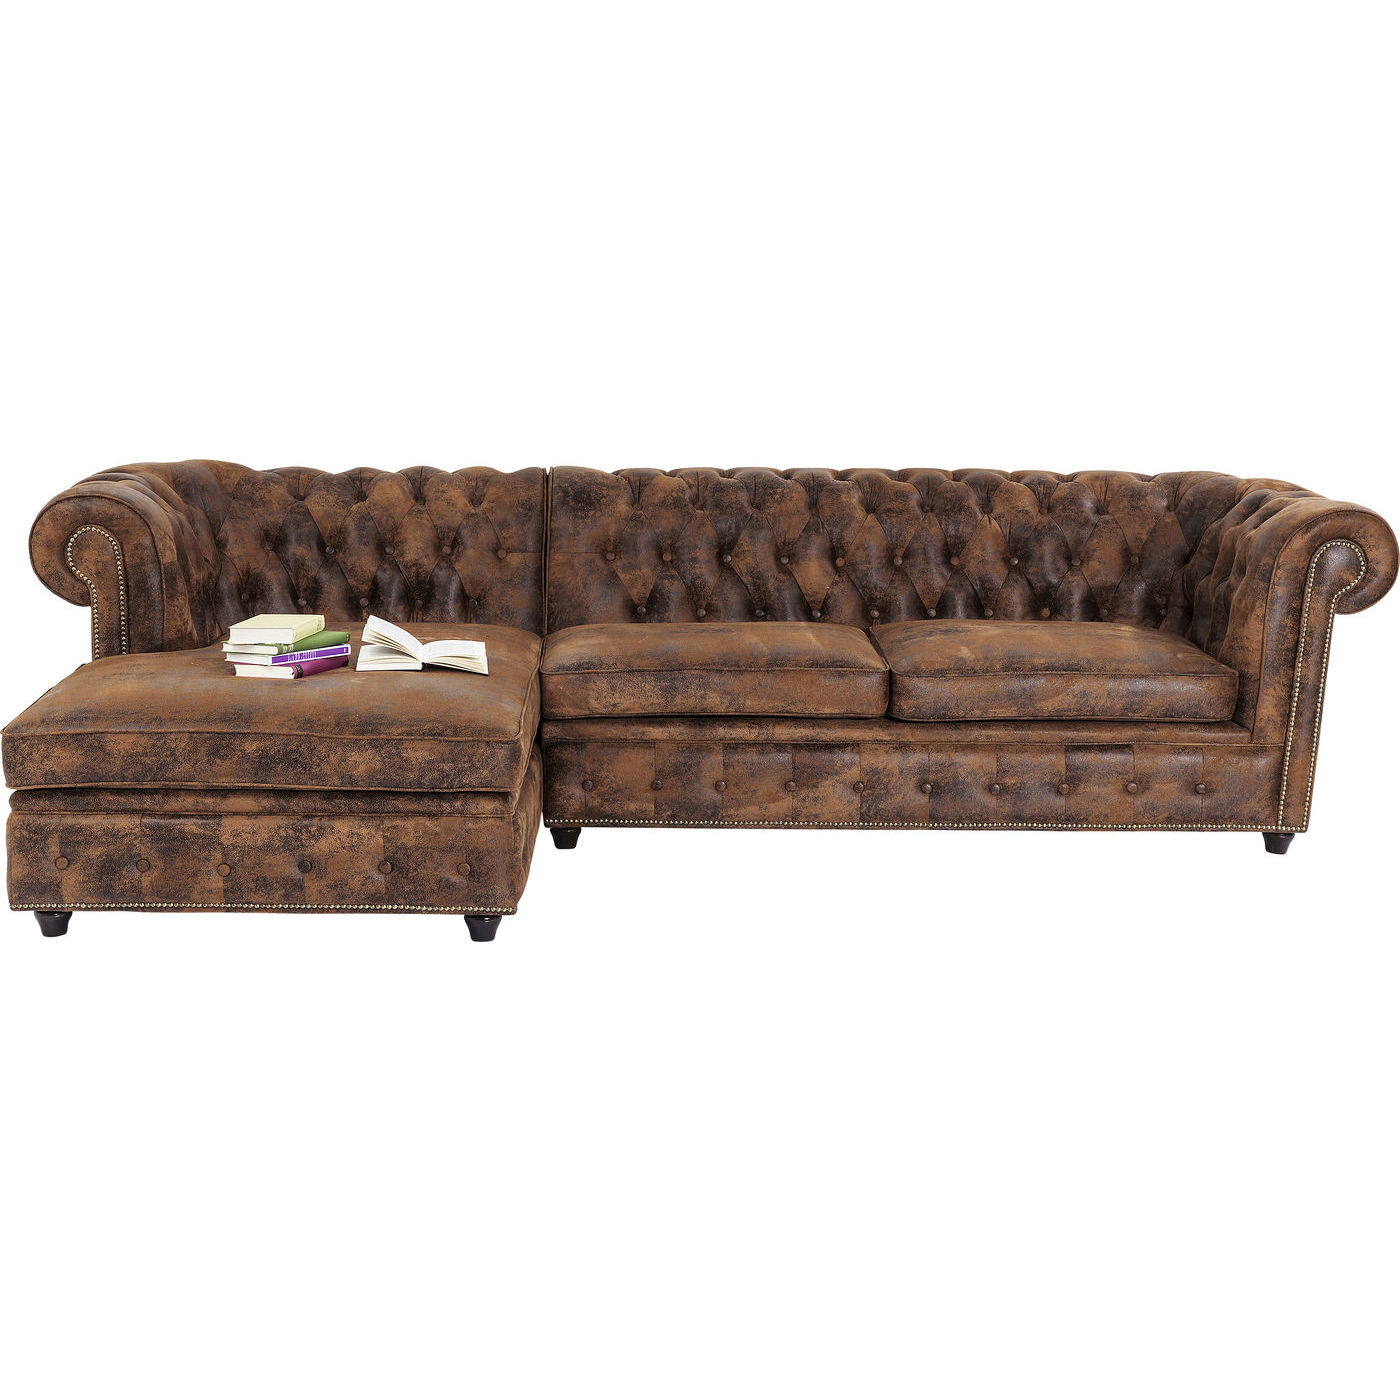 sofa couch eck 3 sitzer dreisitzer vintage chesterfield l. Black Bedroom Furniture Sets. Home Design Ideas